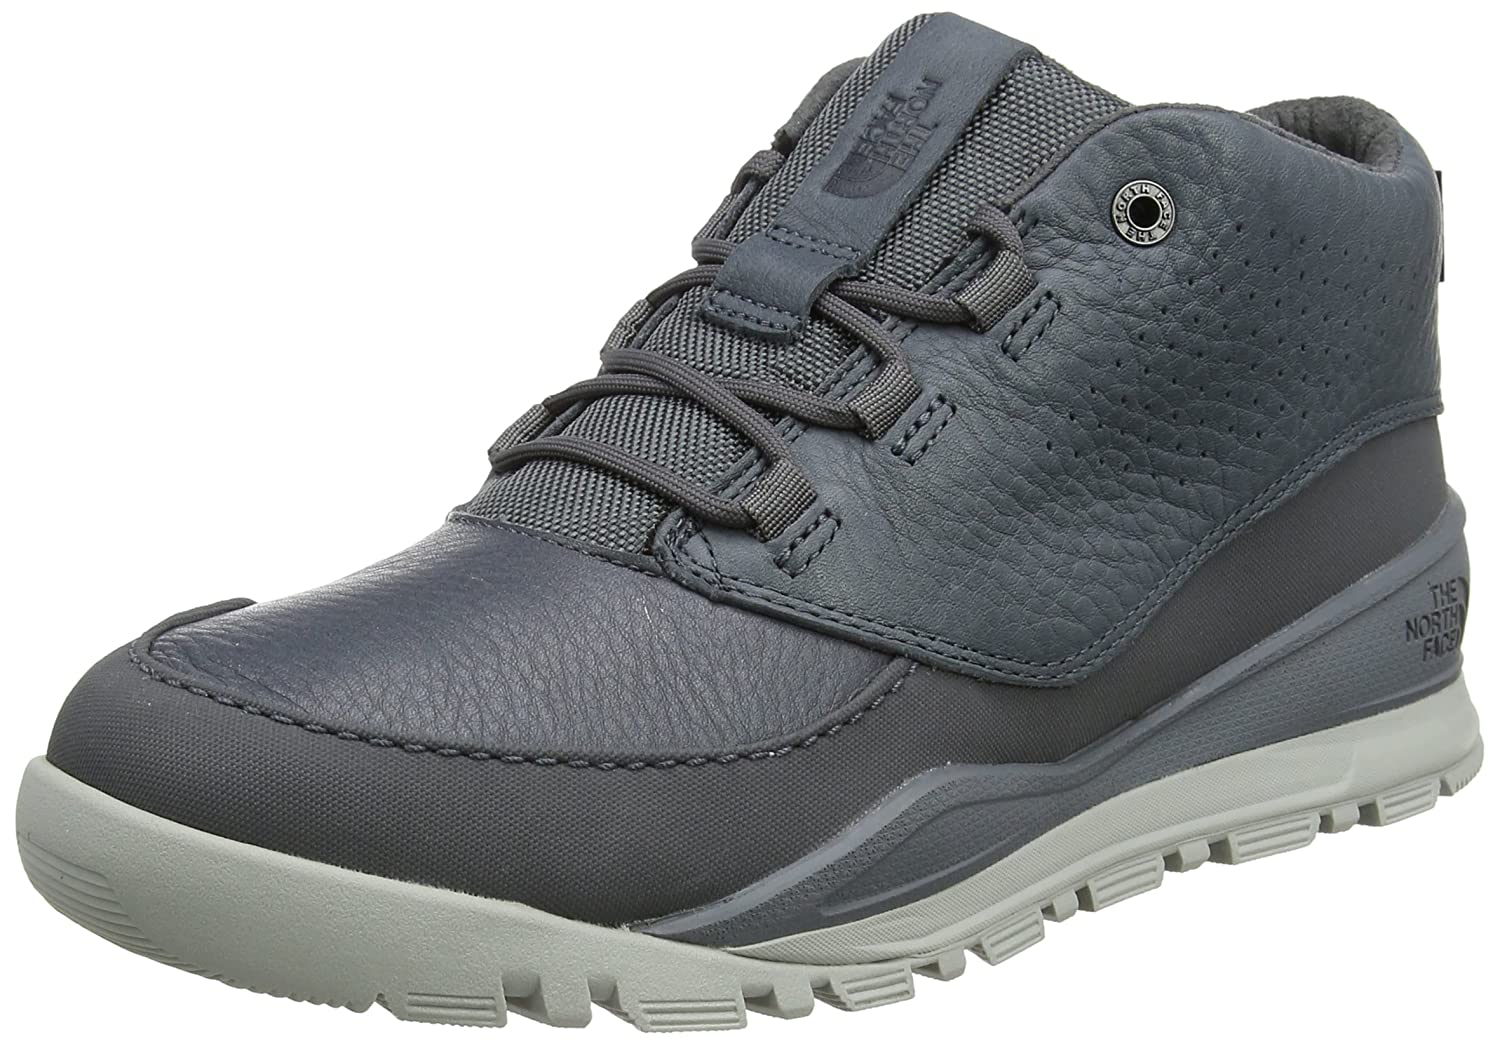 Grau (Zinc grau Highrise grau) THE NORTH FACE Herren Edgewood Chukka Stiefel